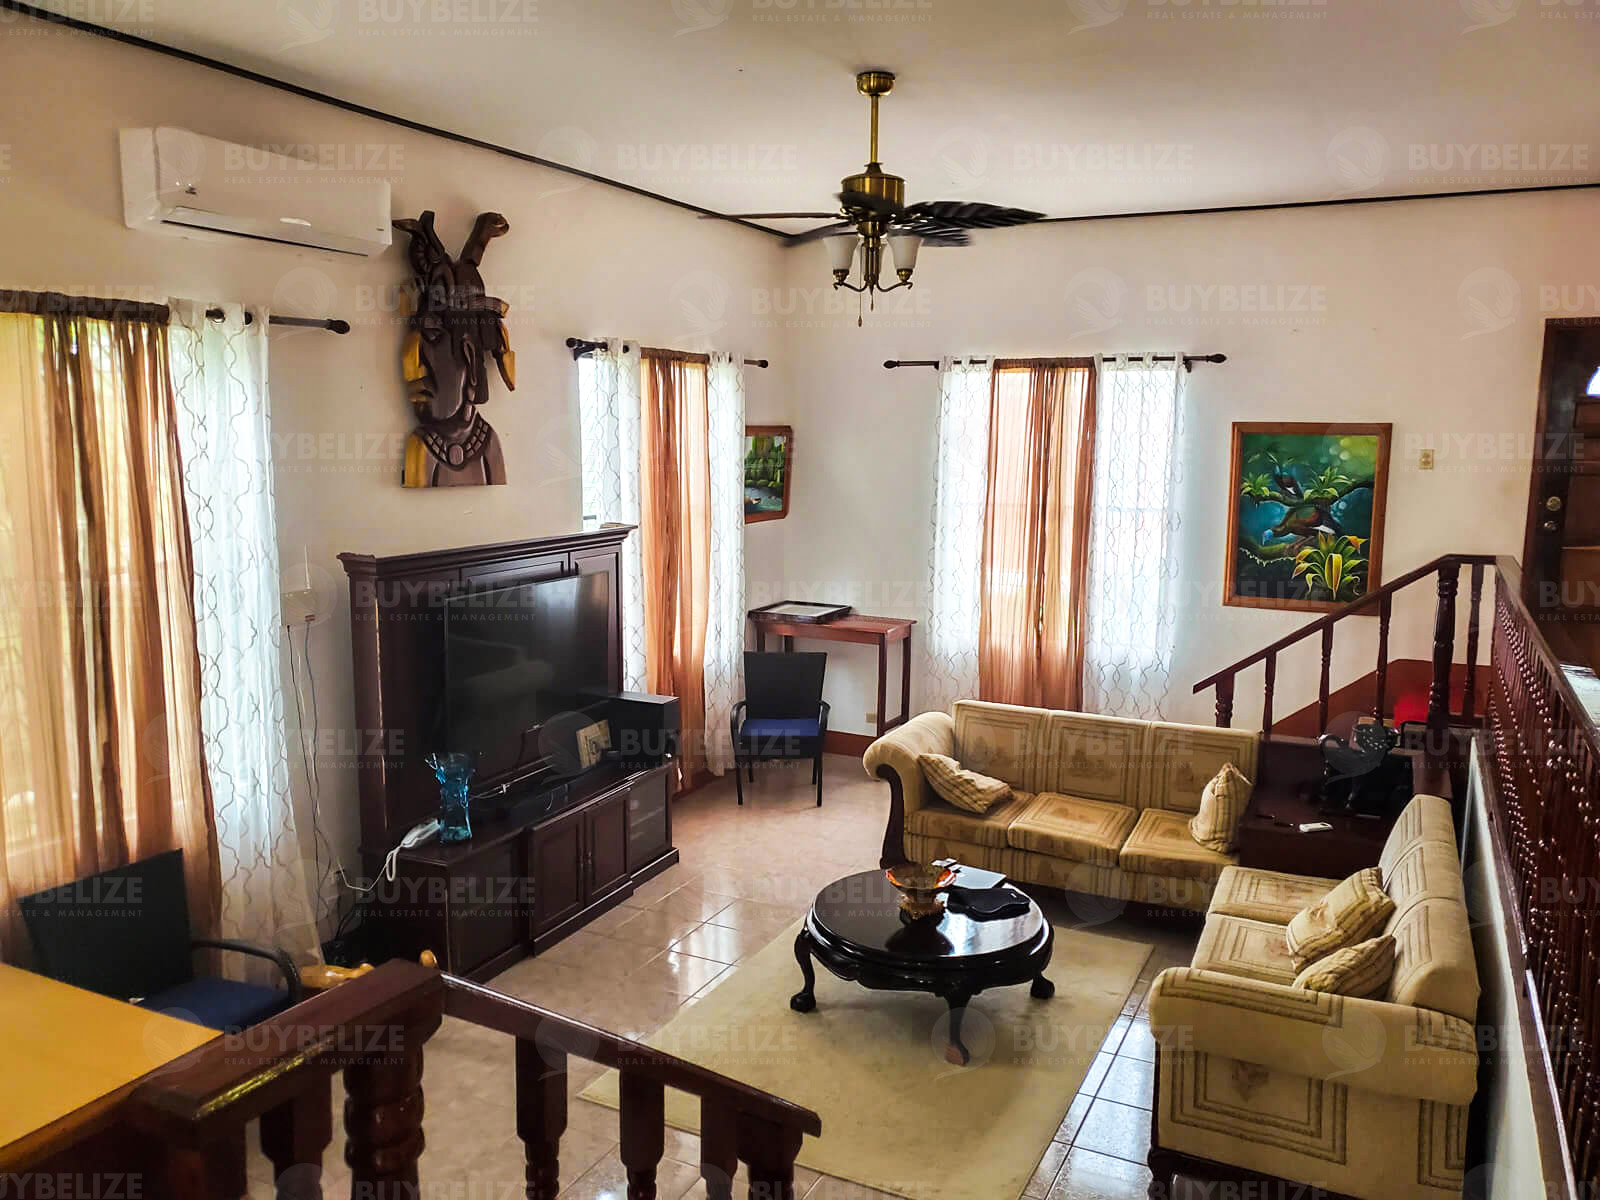 3 Bed 2 Bath House For Rent in Santa Elena